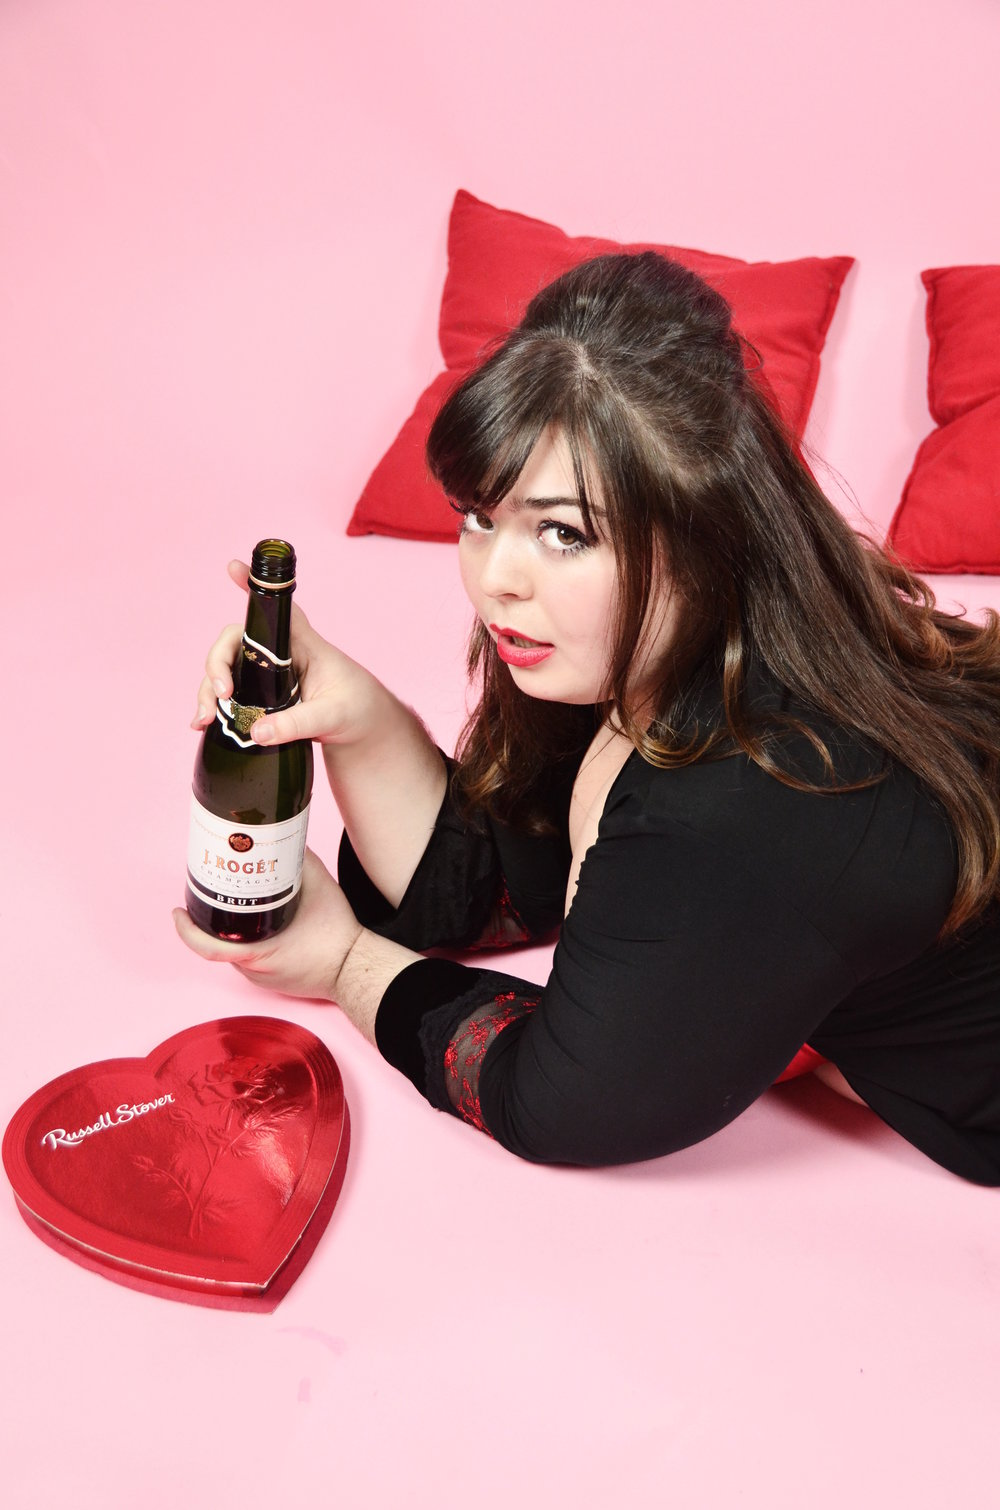 Valentines Pin-Up, February 2016